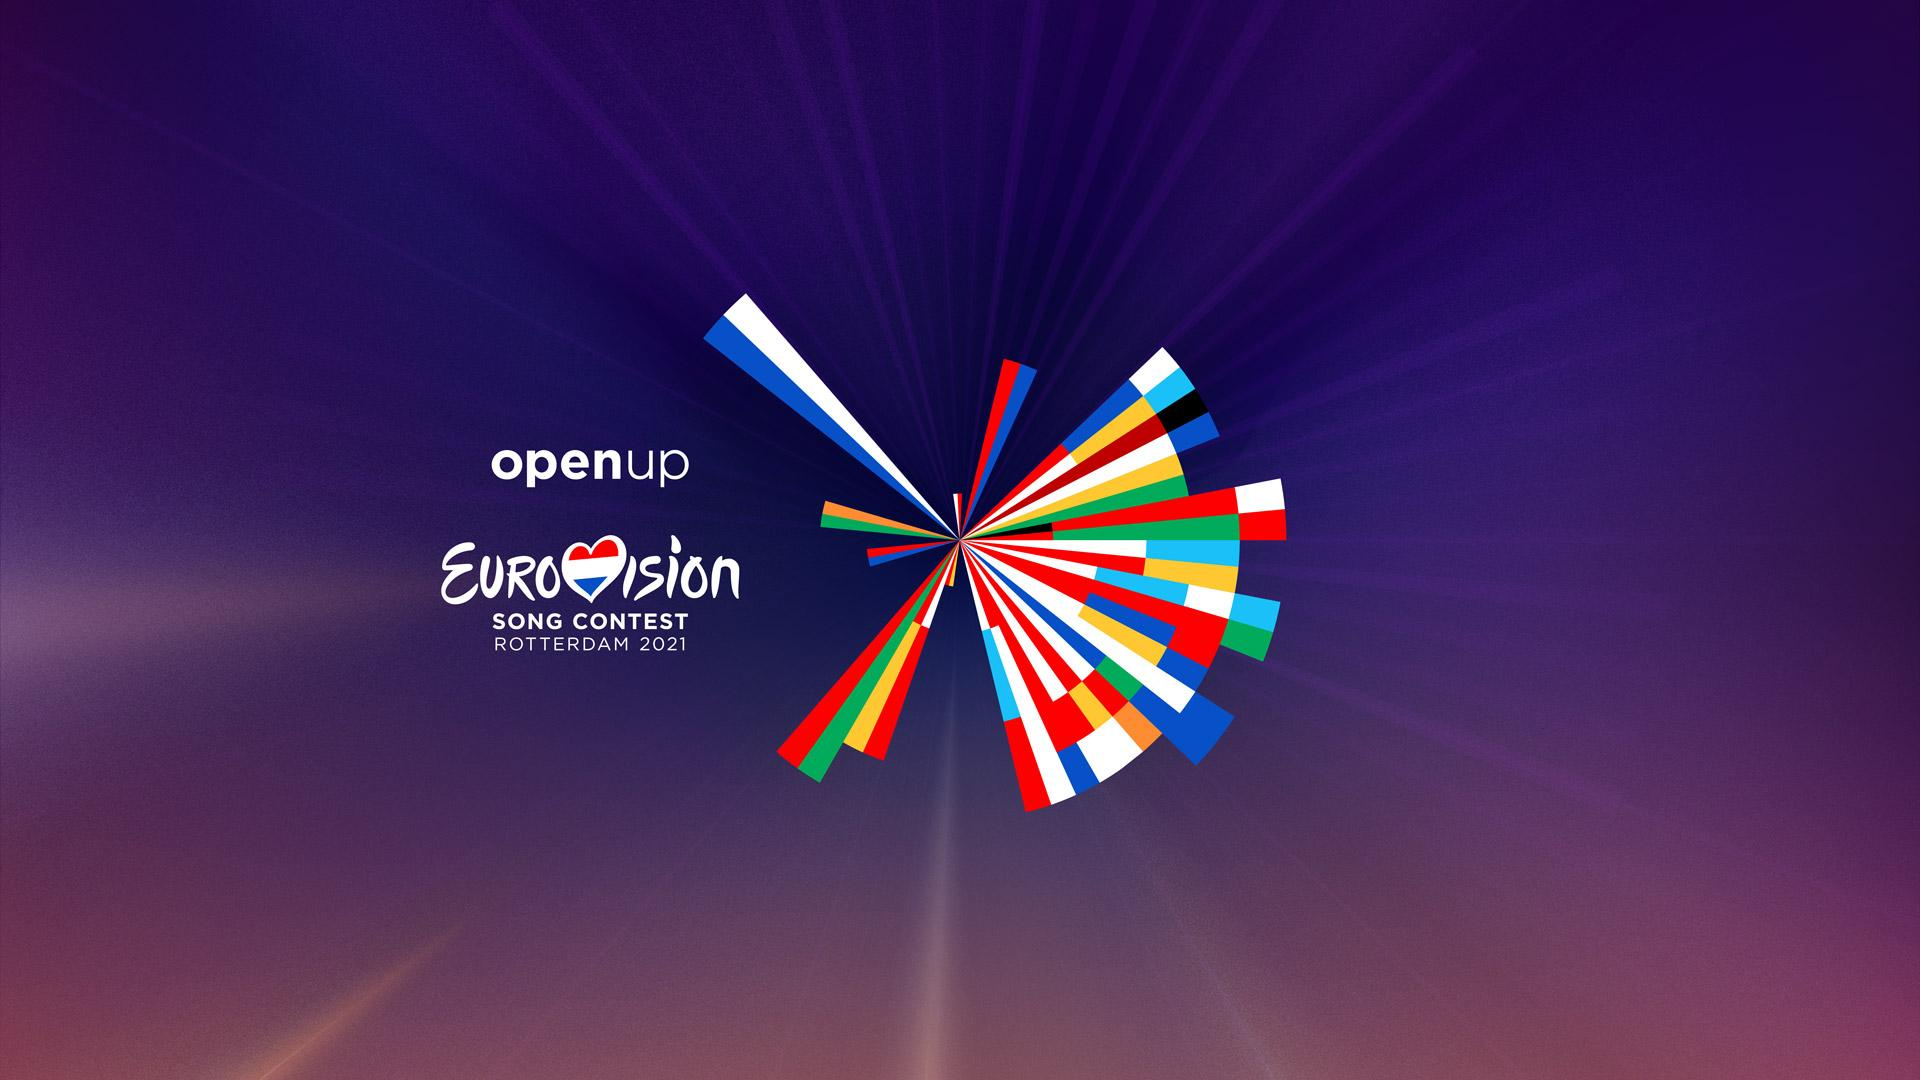 Eurovision Song Contest 2021 - Rotterdam - Open Up